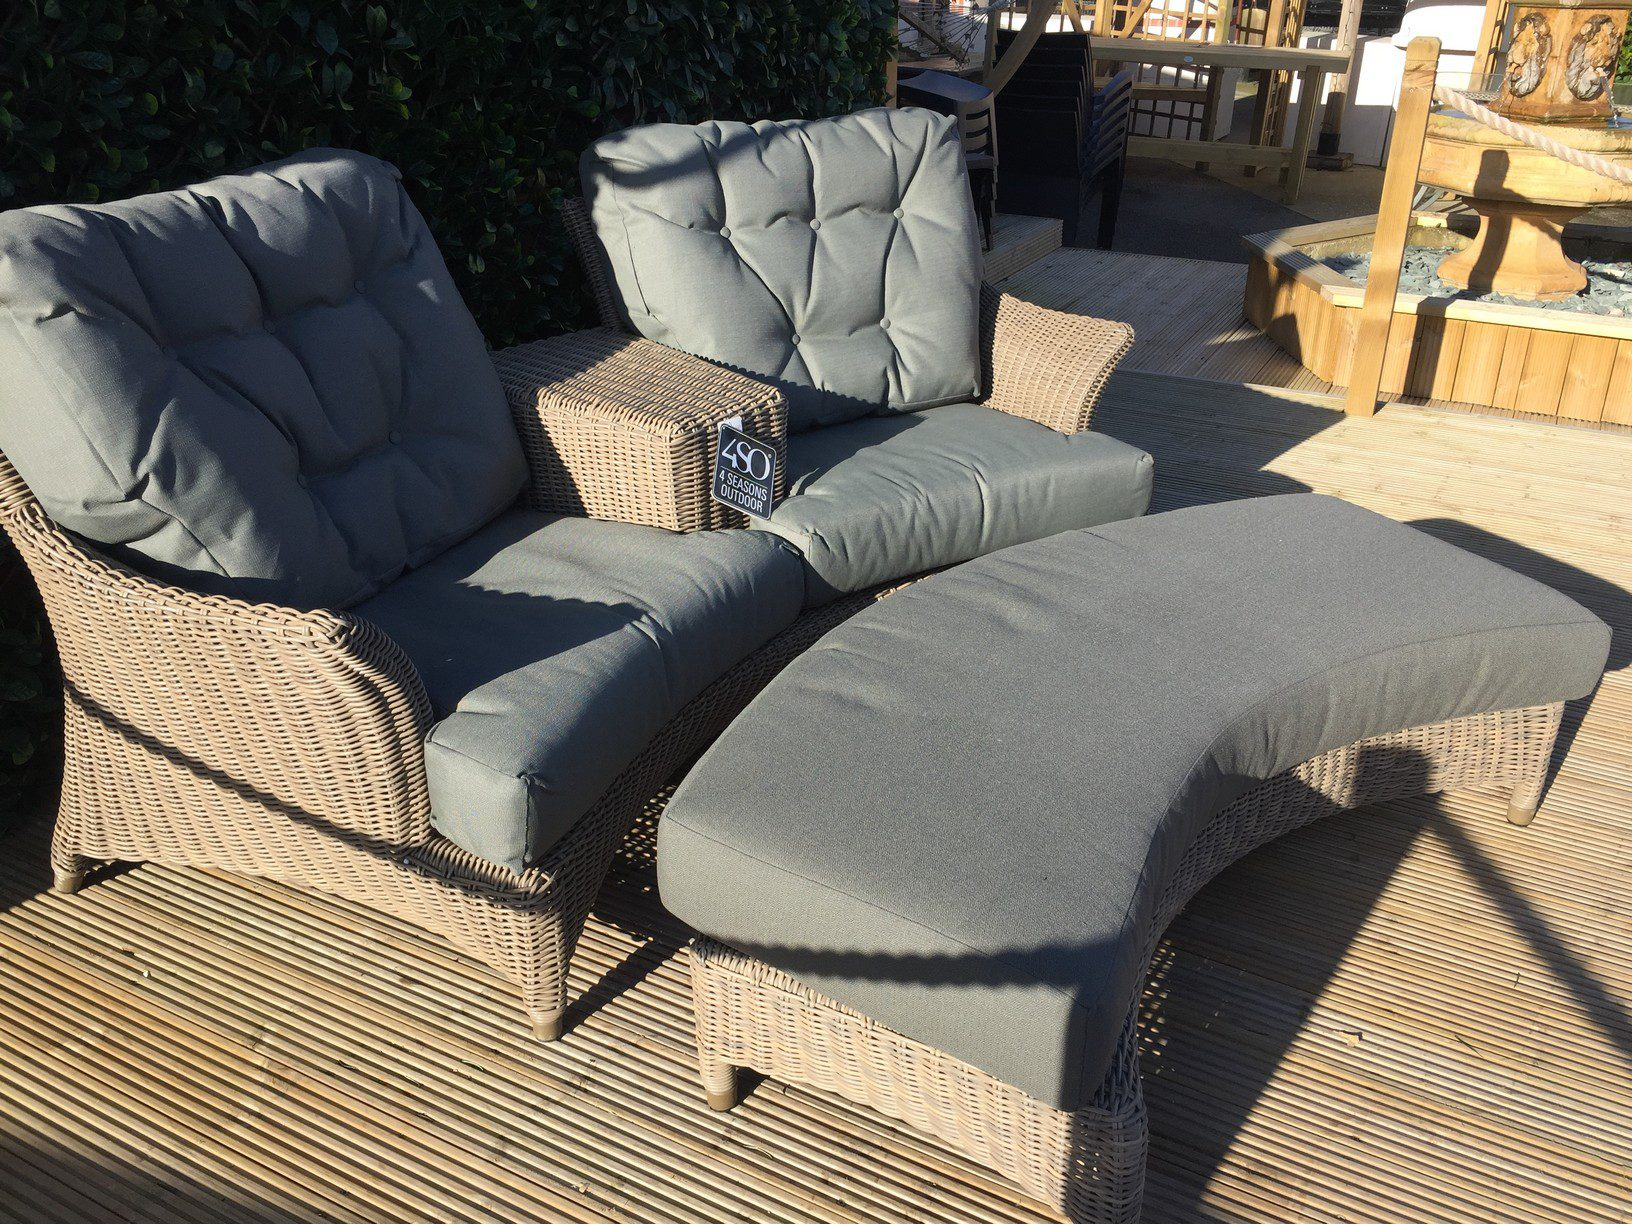 4 Seasons Outdoor Valentine Love Seat With Footrest 14